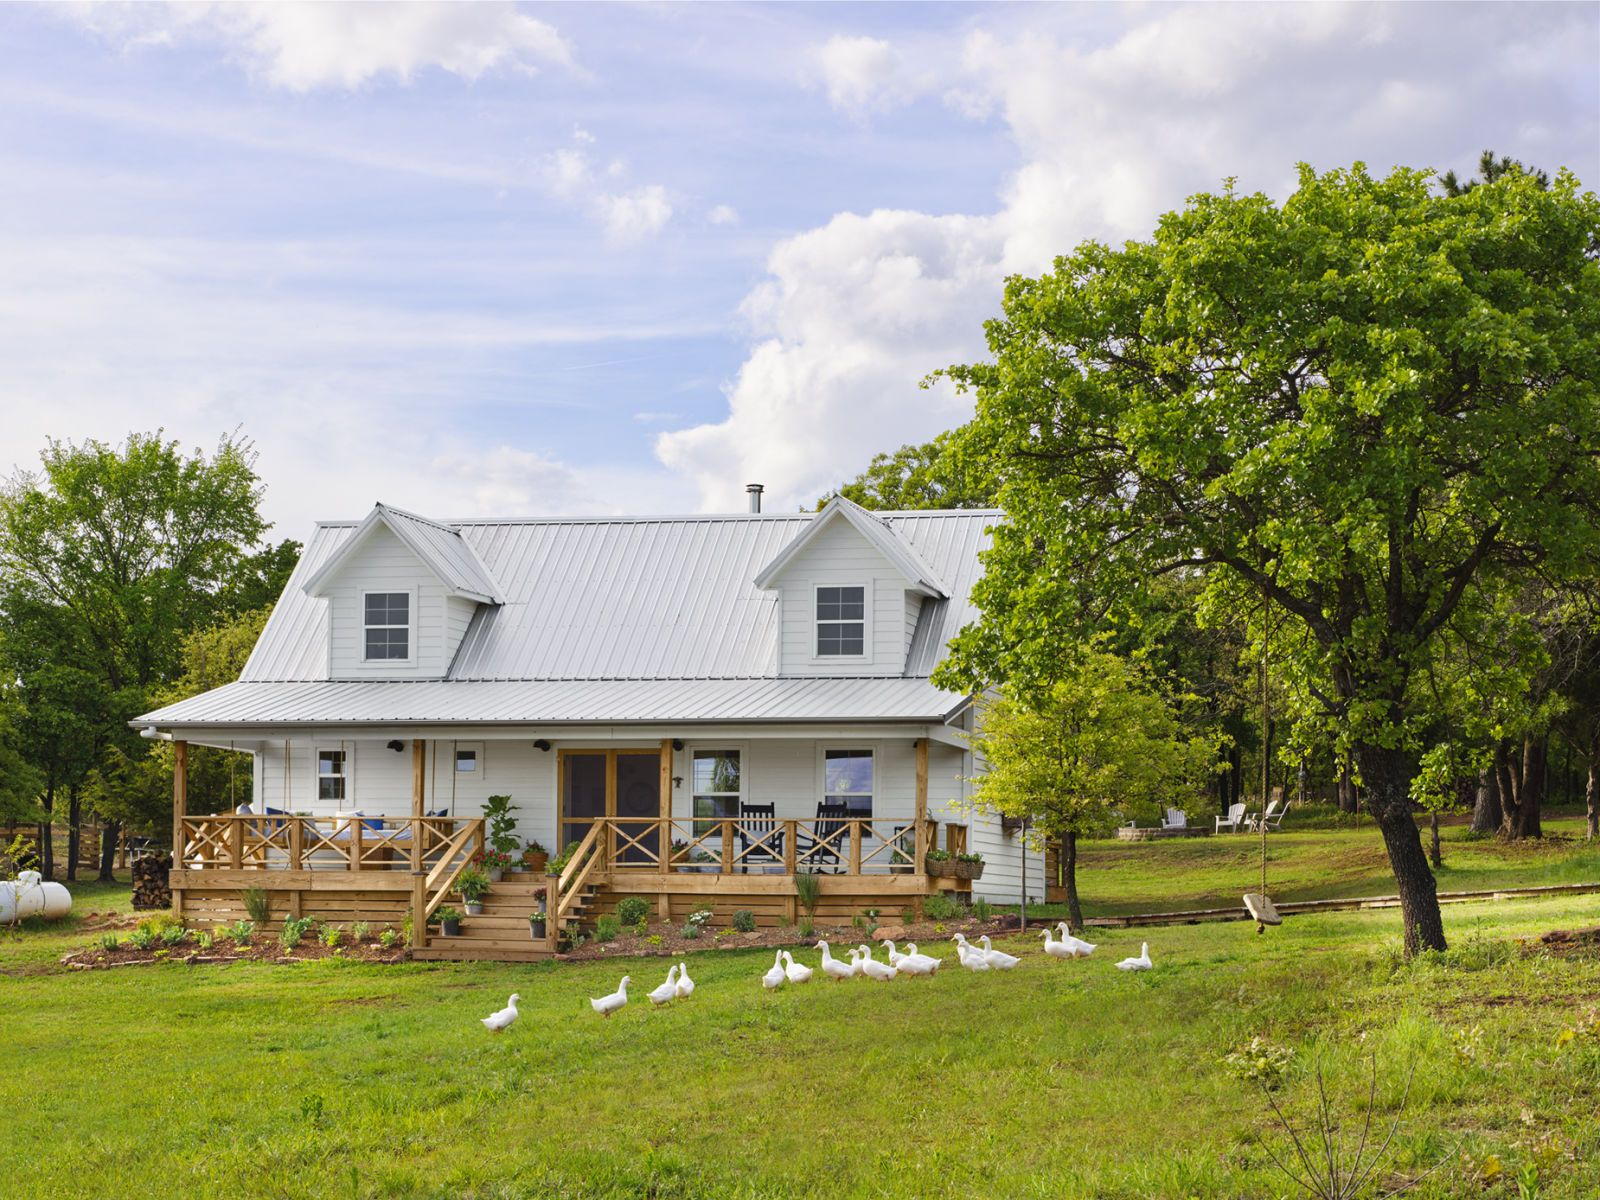 This Oklahoma Couple Ditched Their Big City Home To Build